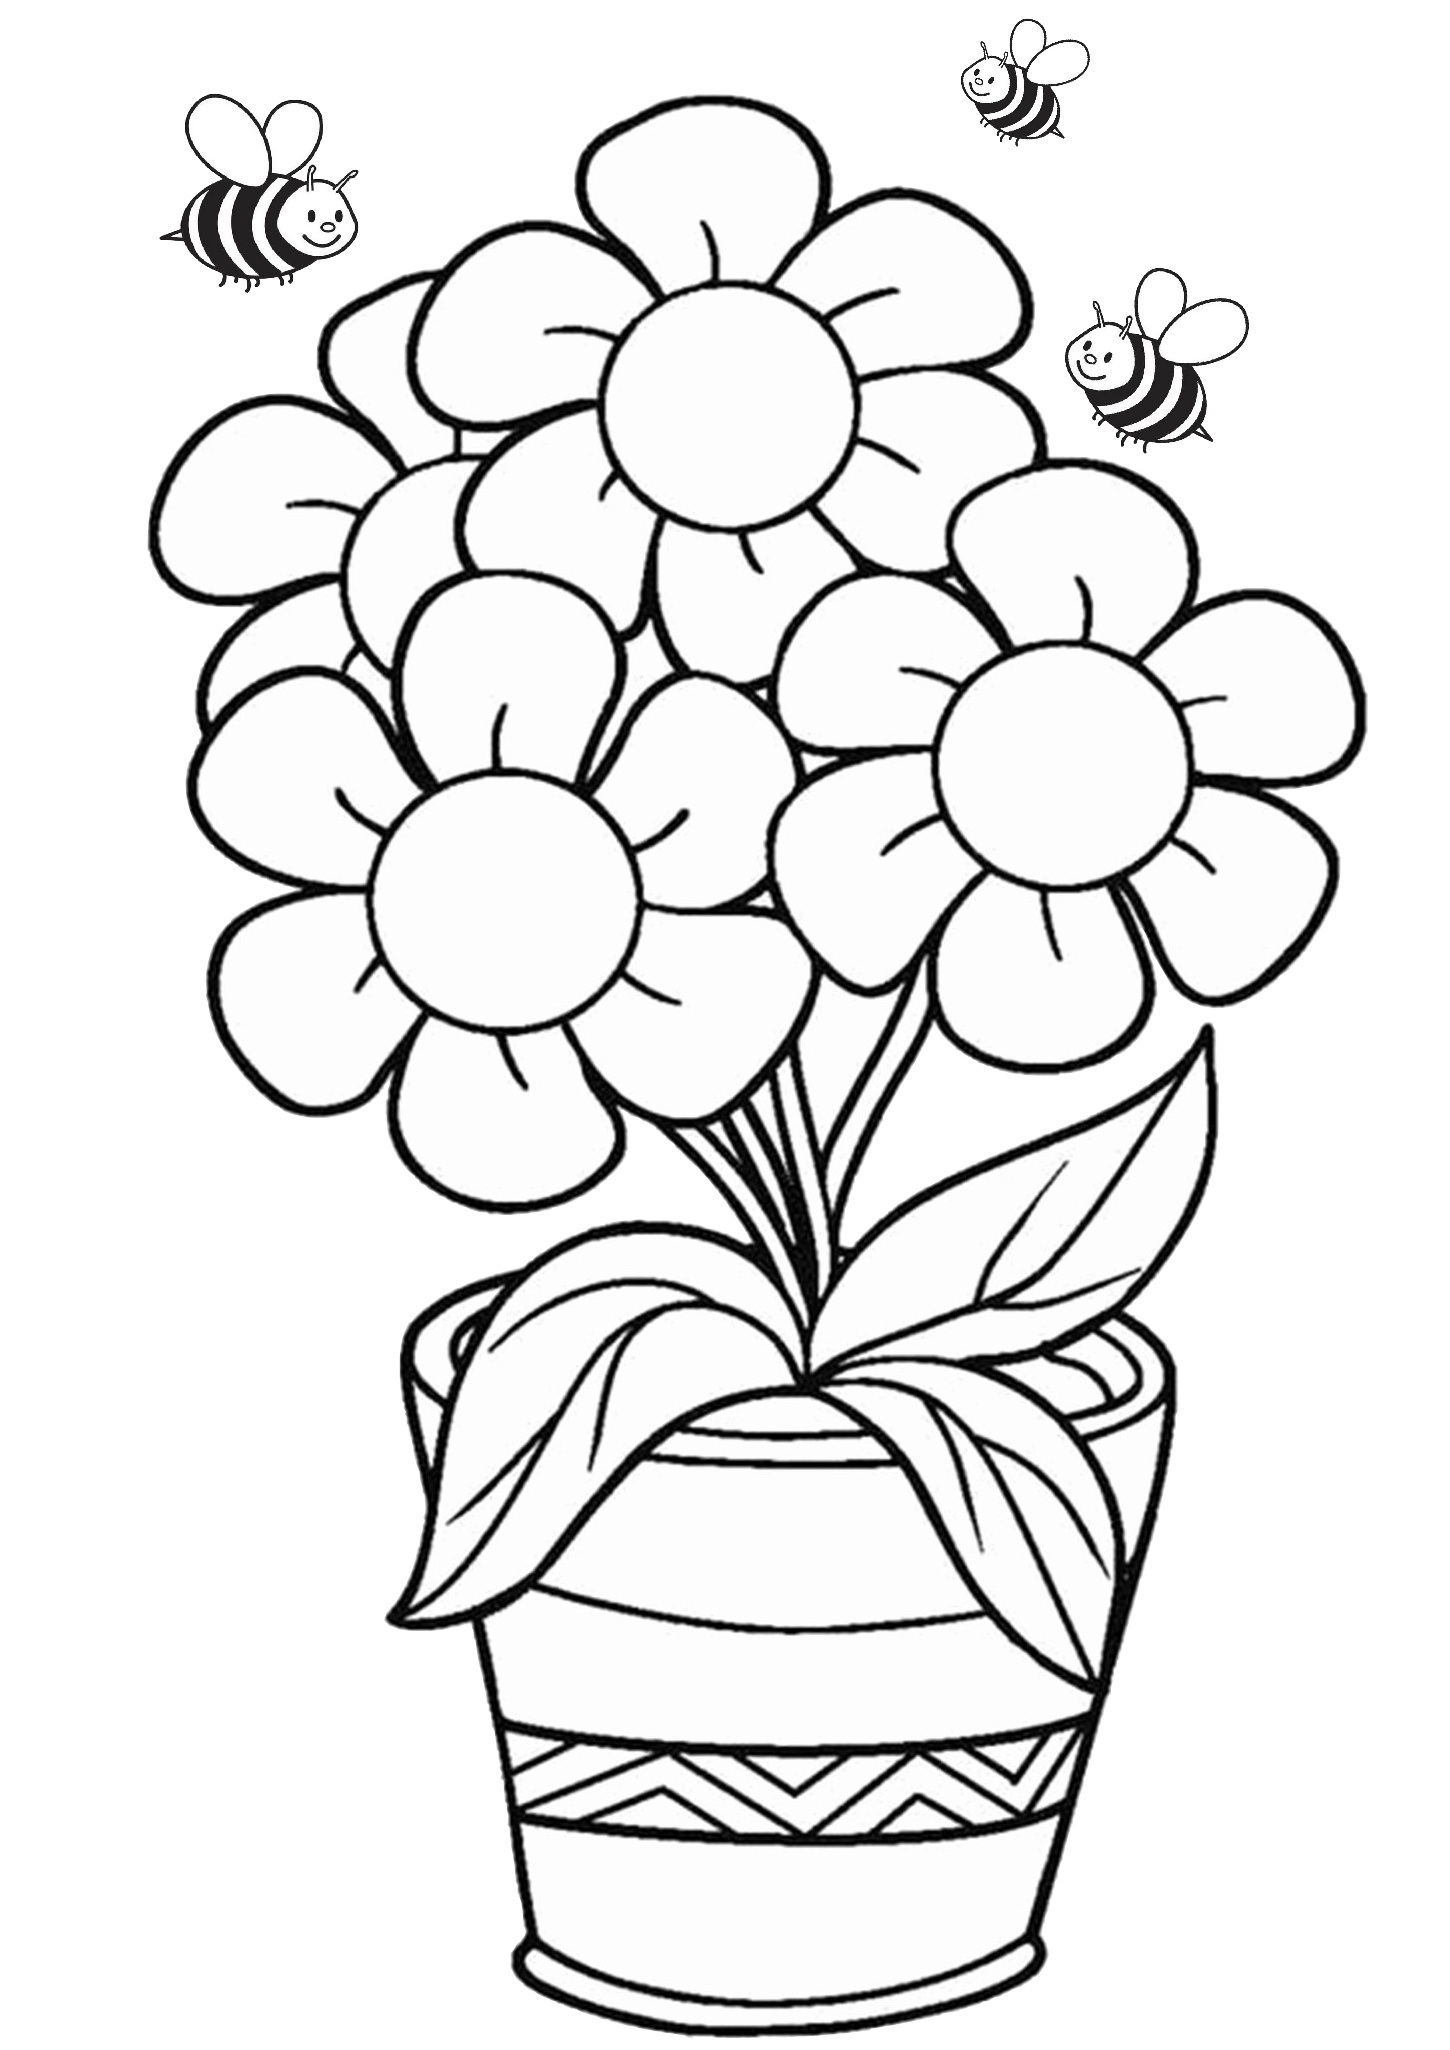 flowers to color and print free printable beautiful flowers coloring page for kids and to color print flowers